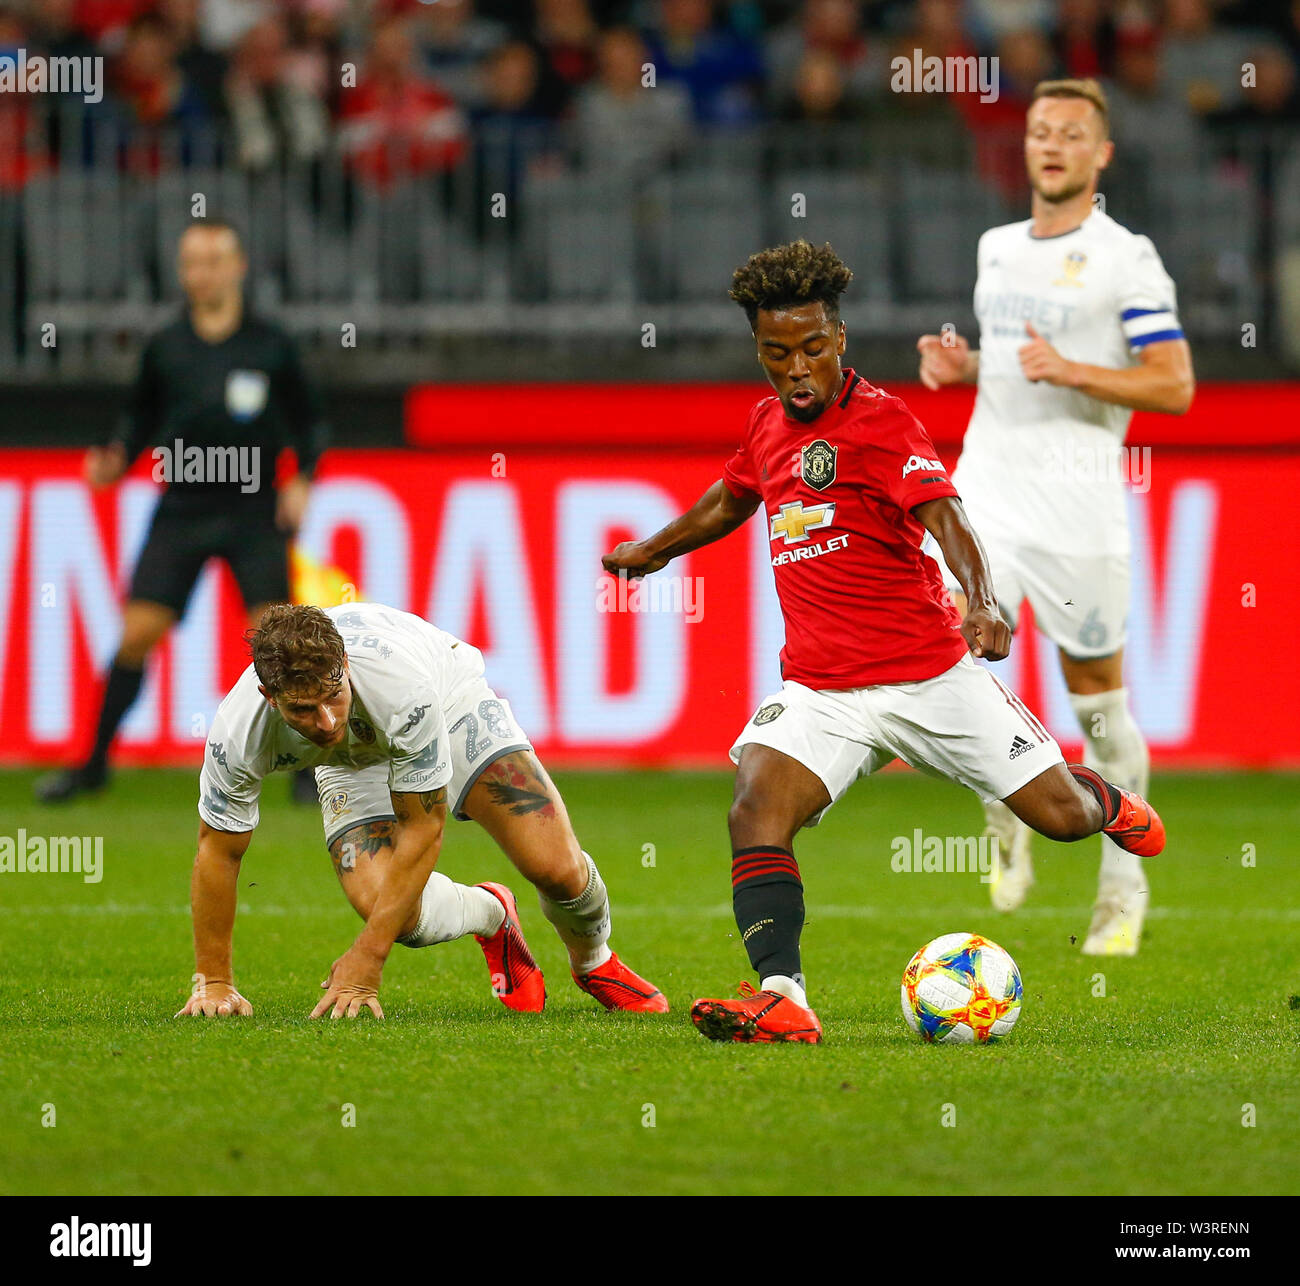 Optus Stadium, Burswood, Perth, W Australia. 17th July 2019. Manchester United versus Leeds United; pre-season tour; Angel Gomes of Manchester United has a shot from just outside the box Credit: Action Plus Sports Images/Alamy Live News Stock Photo